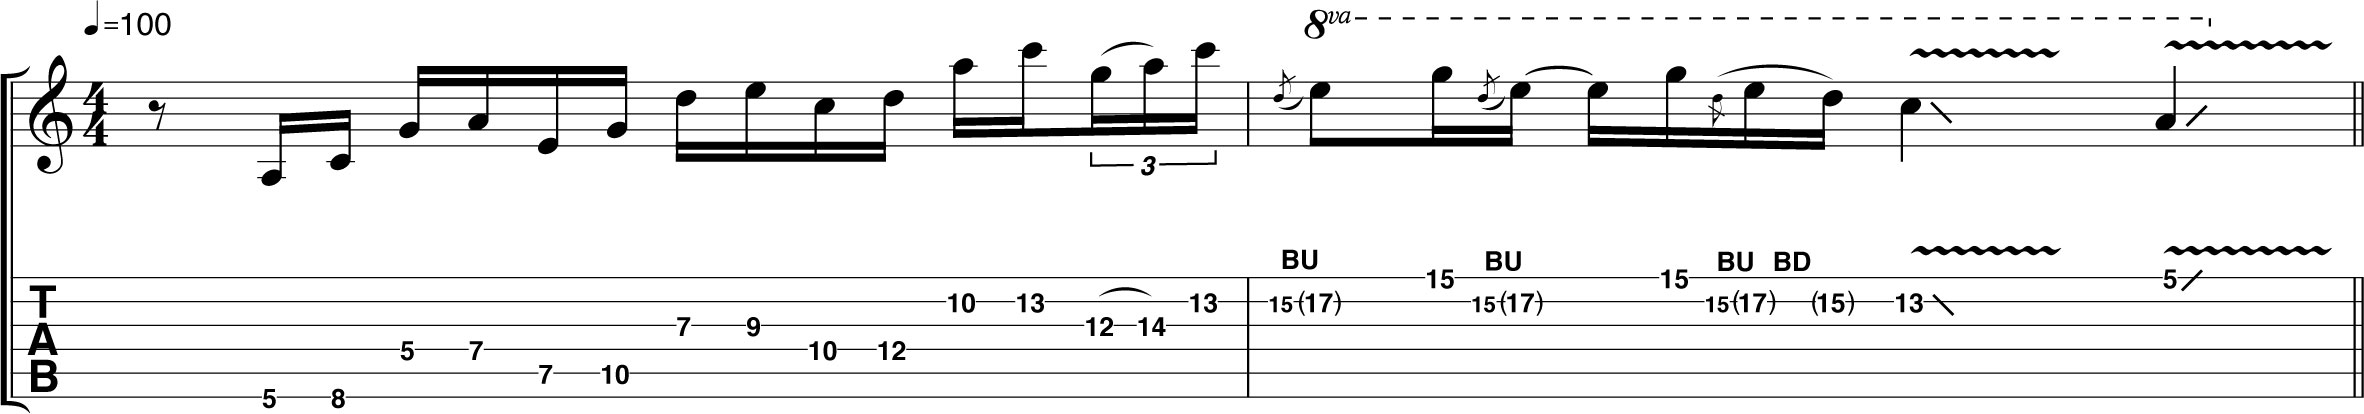 how-to-play-pentatonic-rock